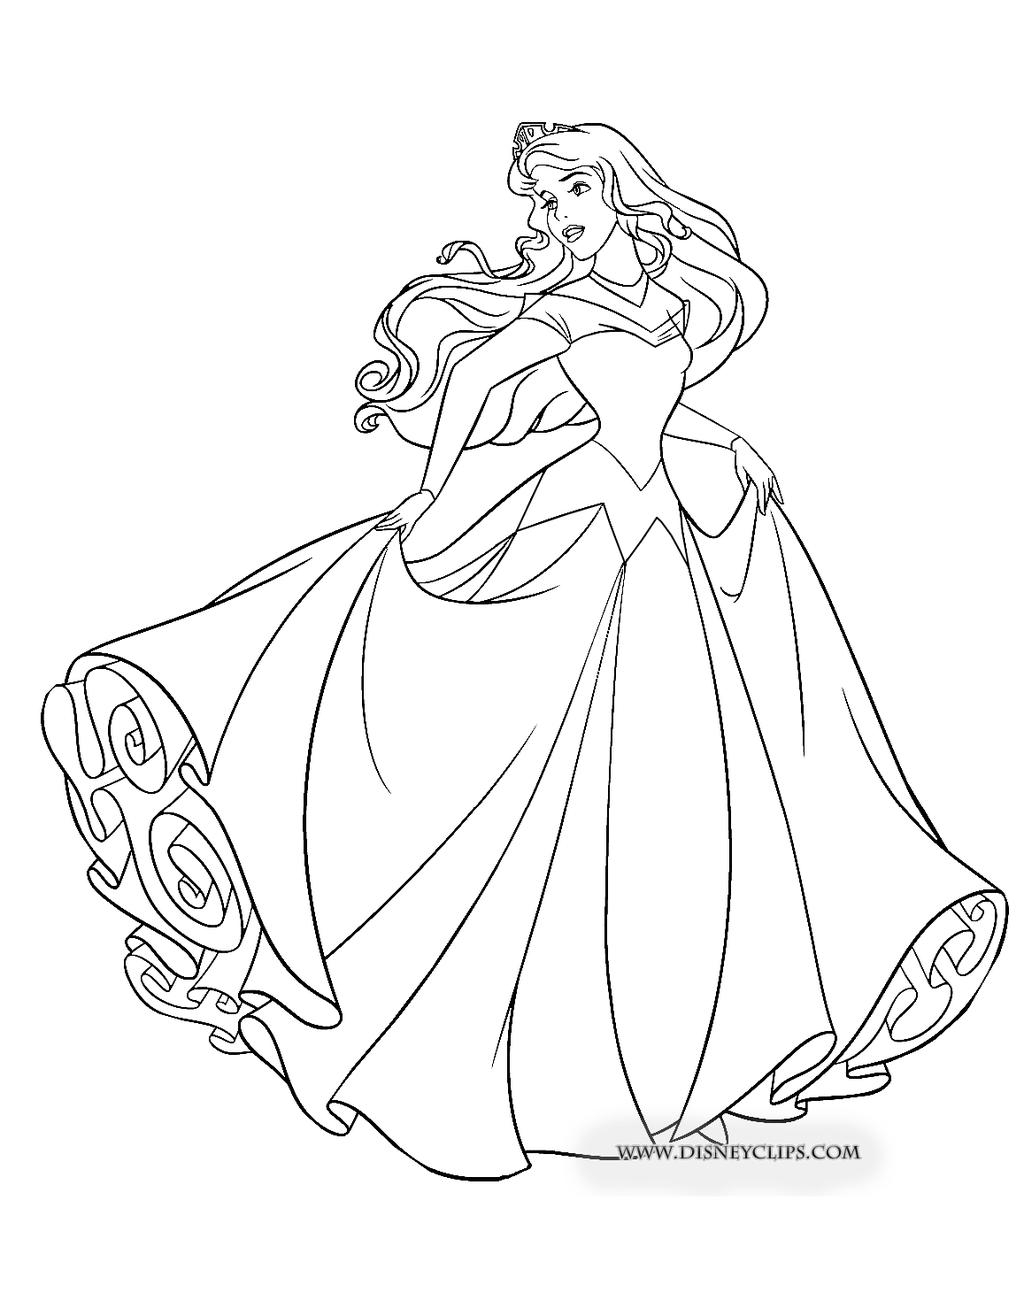 Princess Aurora Coloring Pages Free Maleficent Coloring Pages Aurora Maleficent Coloring Pages Exclusive